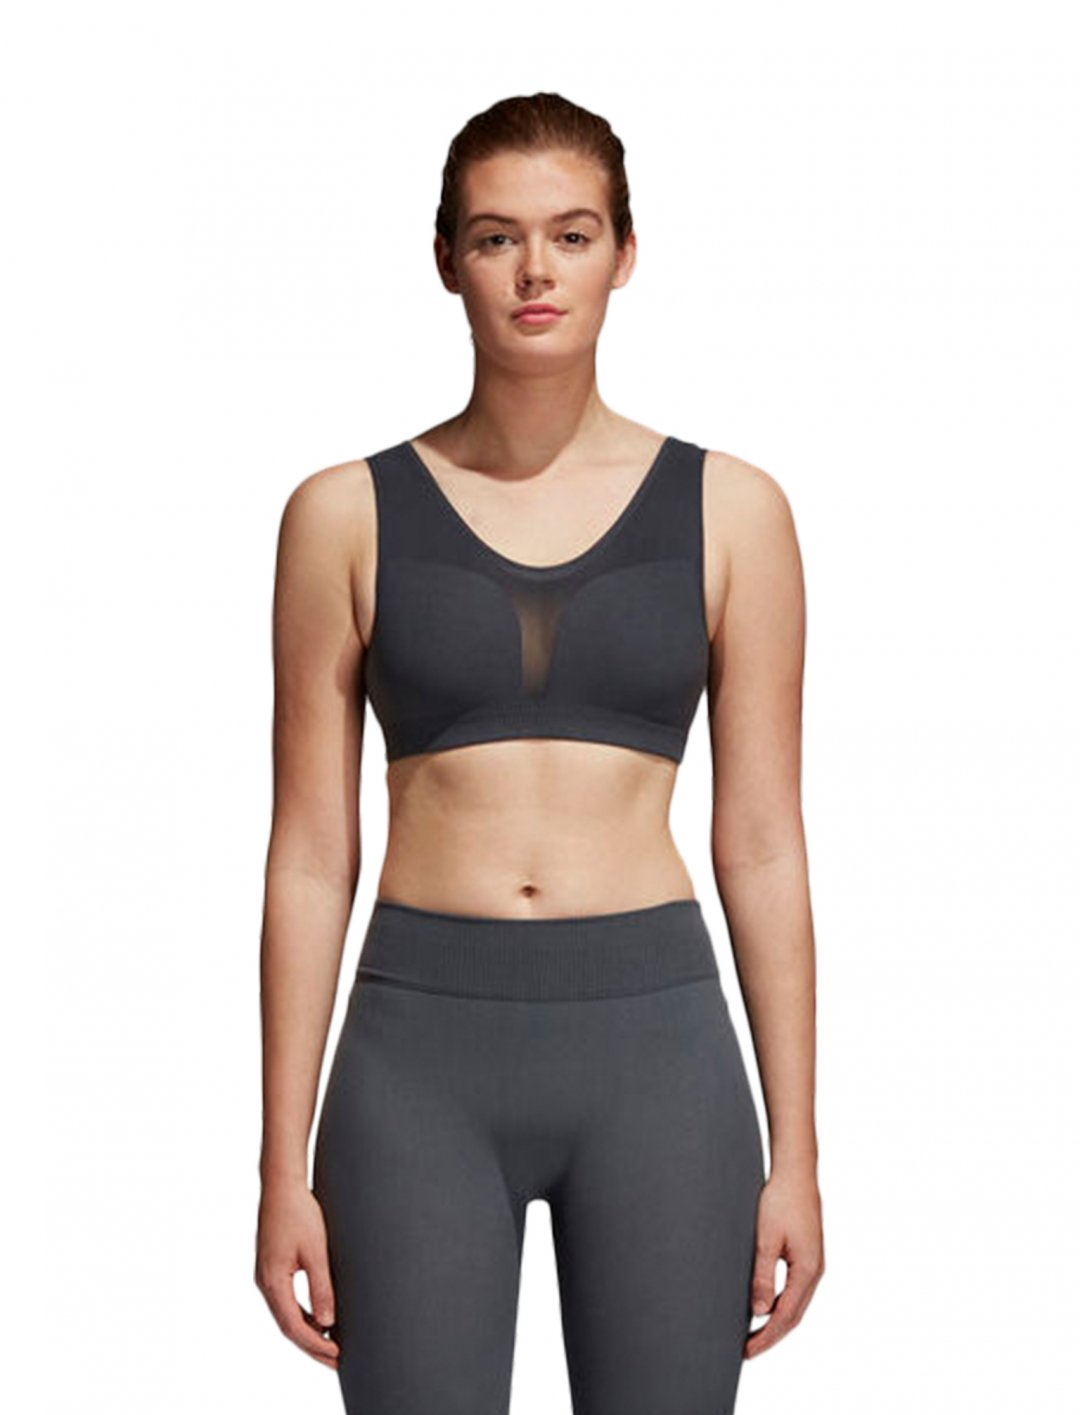 """Adidas Wrap Knit Bra {""""id"""":5,""""product_section_id"""":1,""""name"""":""""Clothing"""",""""order"""":5} Adidas"""